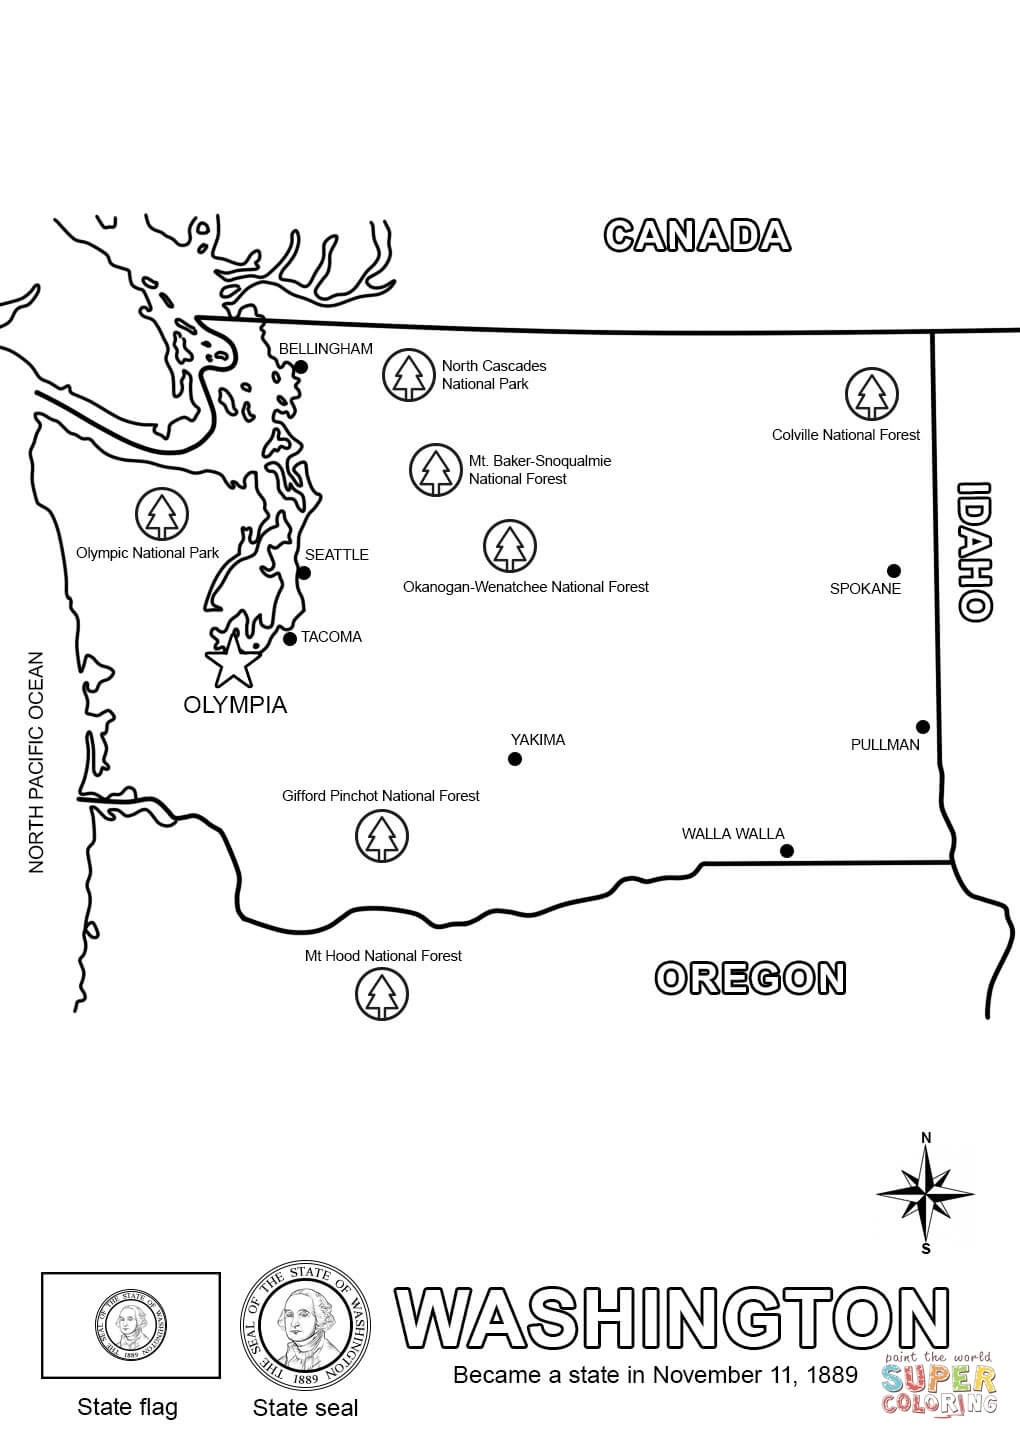 Washington State Map Coloring Page | Free Printable Coloring Pages - Free Printable Map Of Washington State